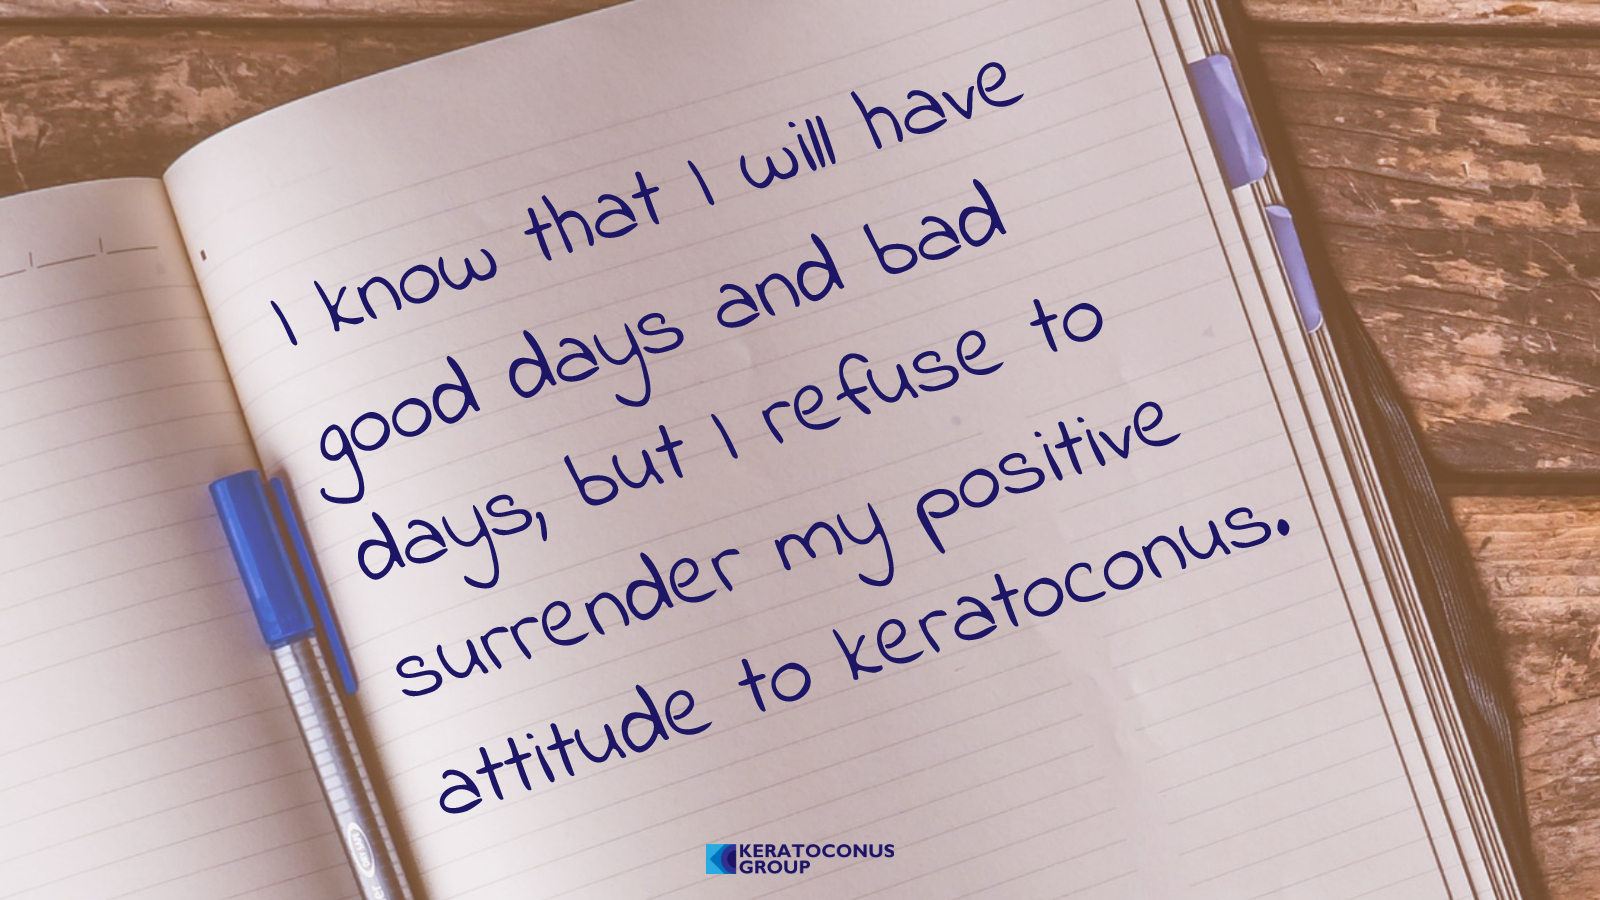 I know that I will have good days and bad days, but I refuse to surrender my positive attitude to keratoconus.